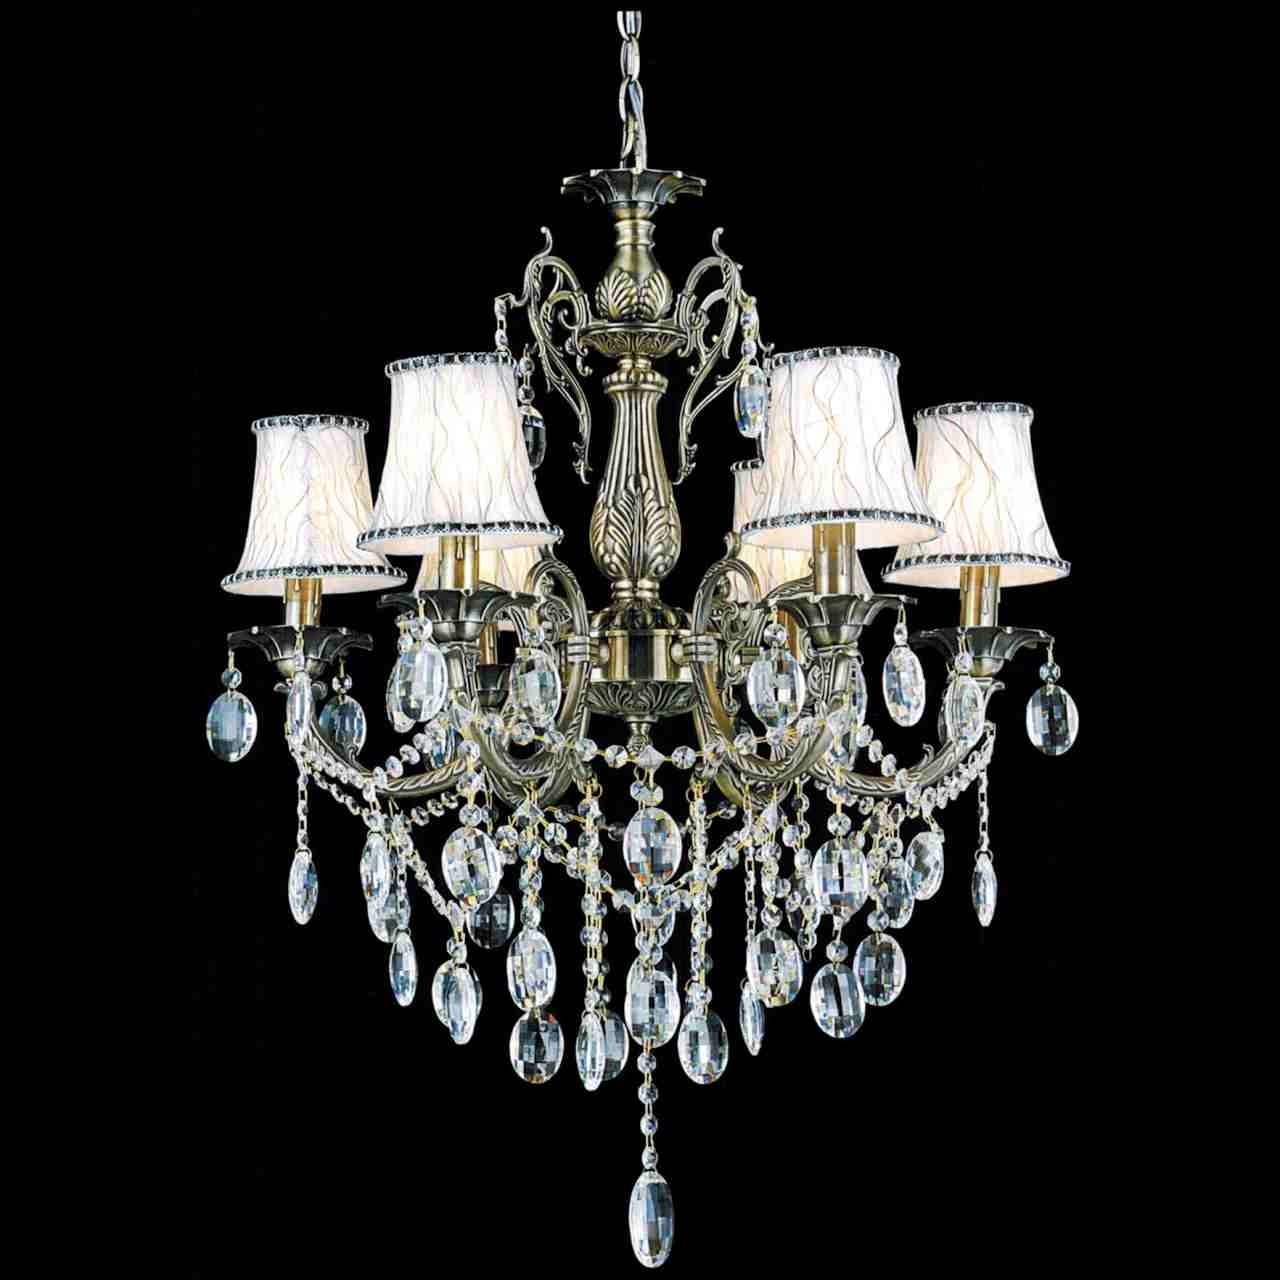 Brizzo Lighting Stores 24 Ottone Traditional Candle Round Within Crystal Chandeliers With Shades (View 4 of 25)